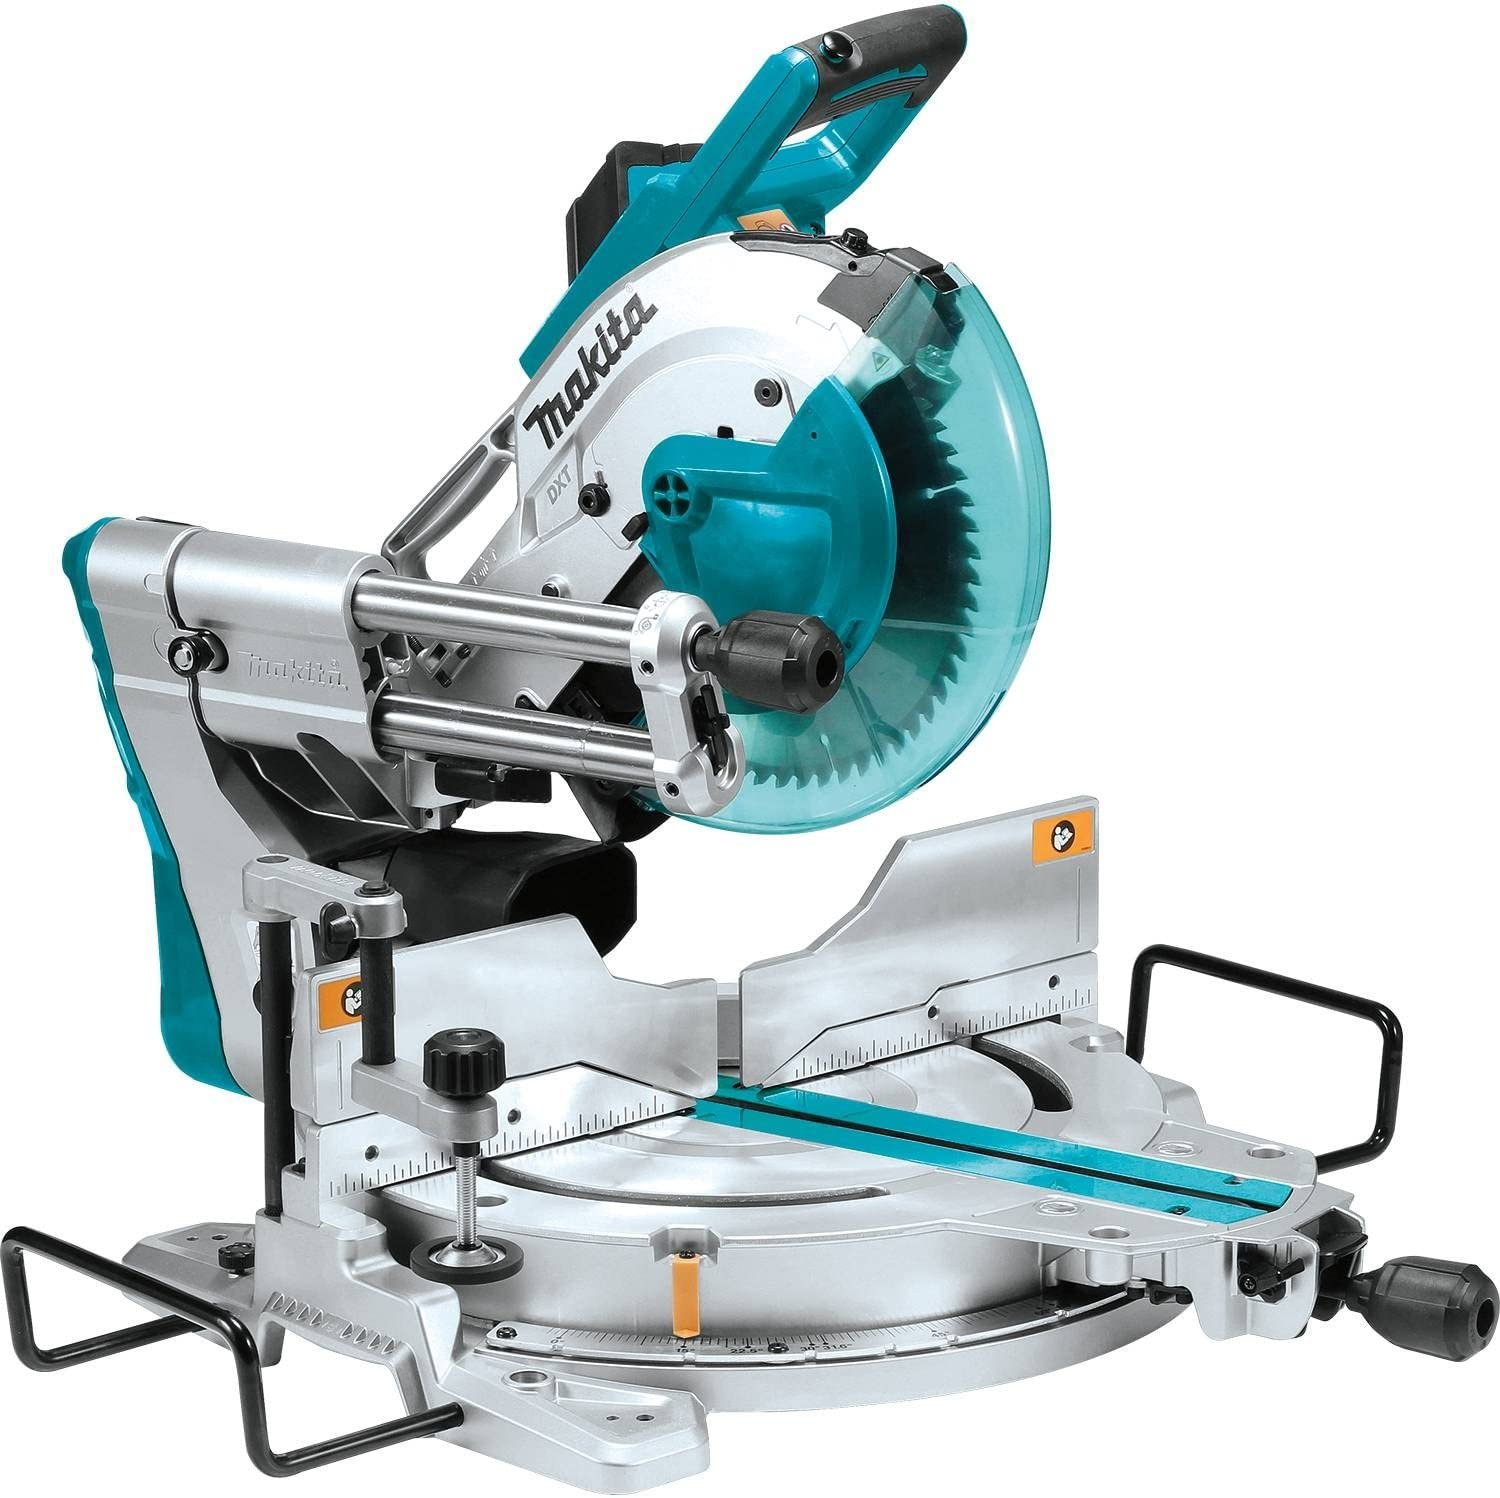 Makita_LS1019L_Miter Saw